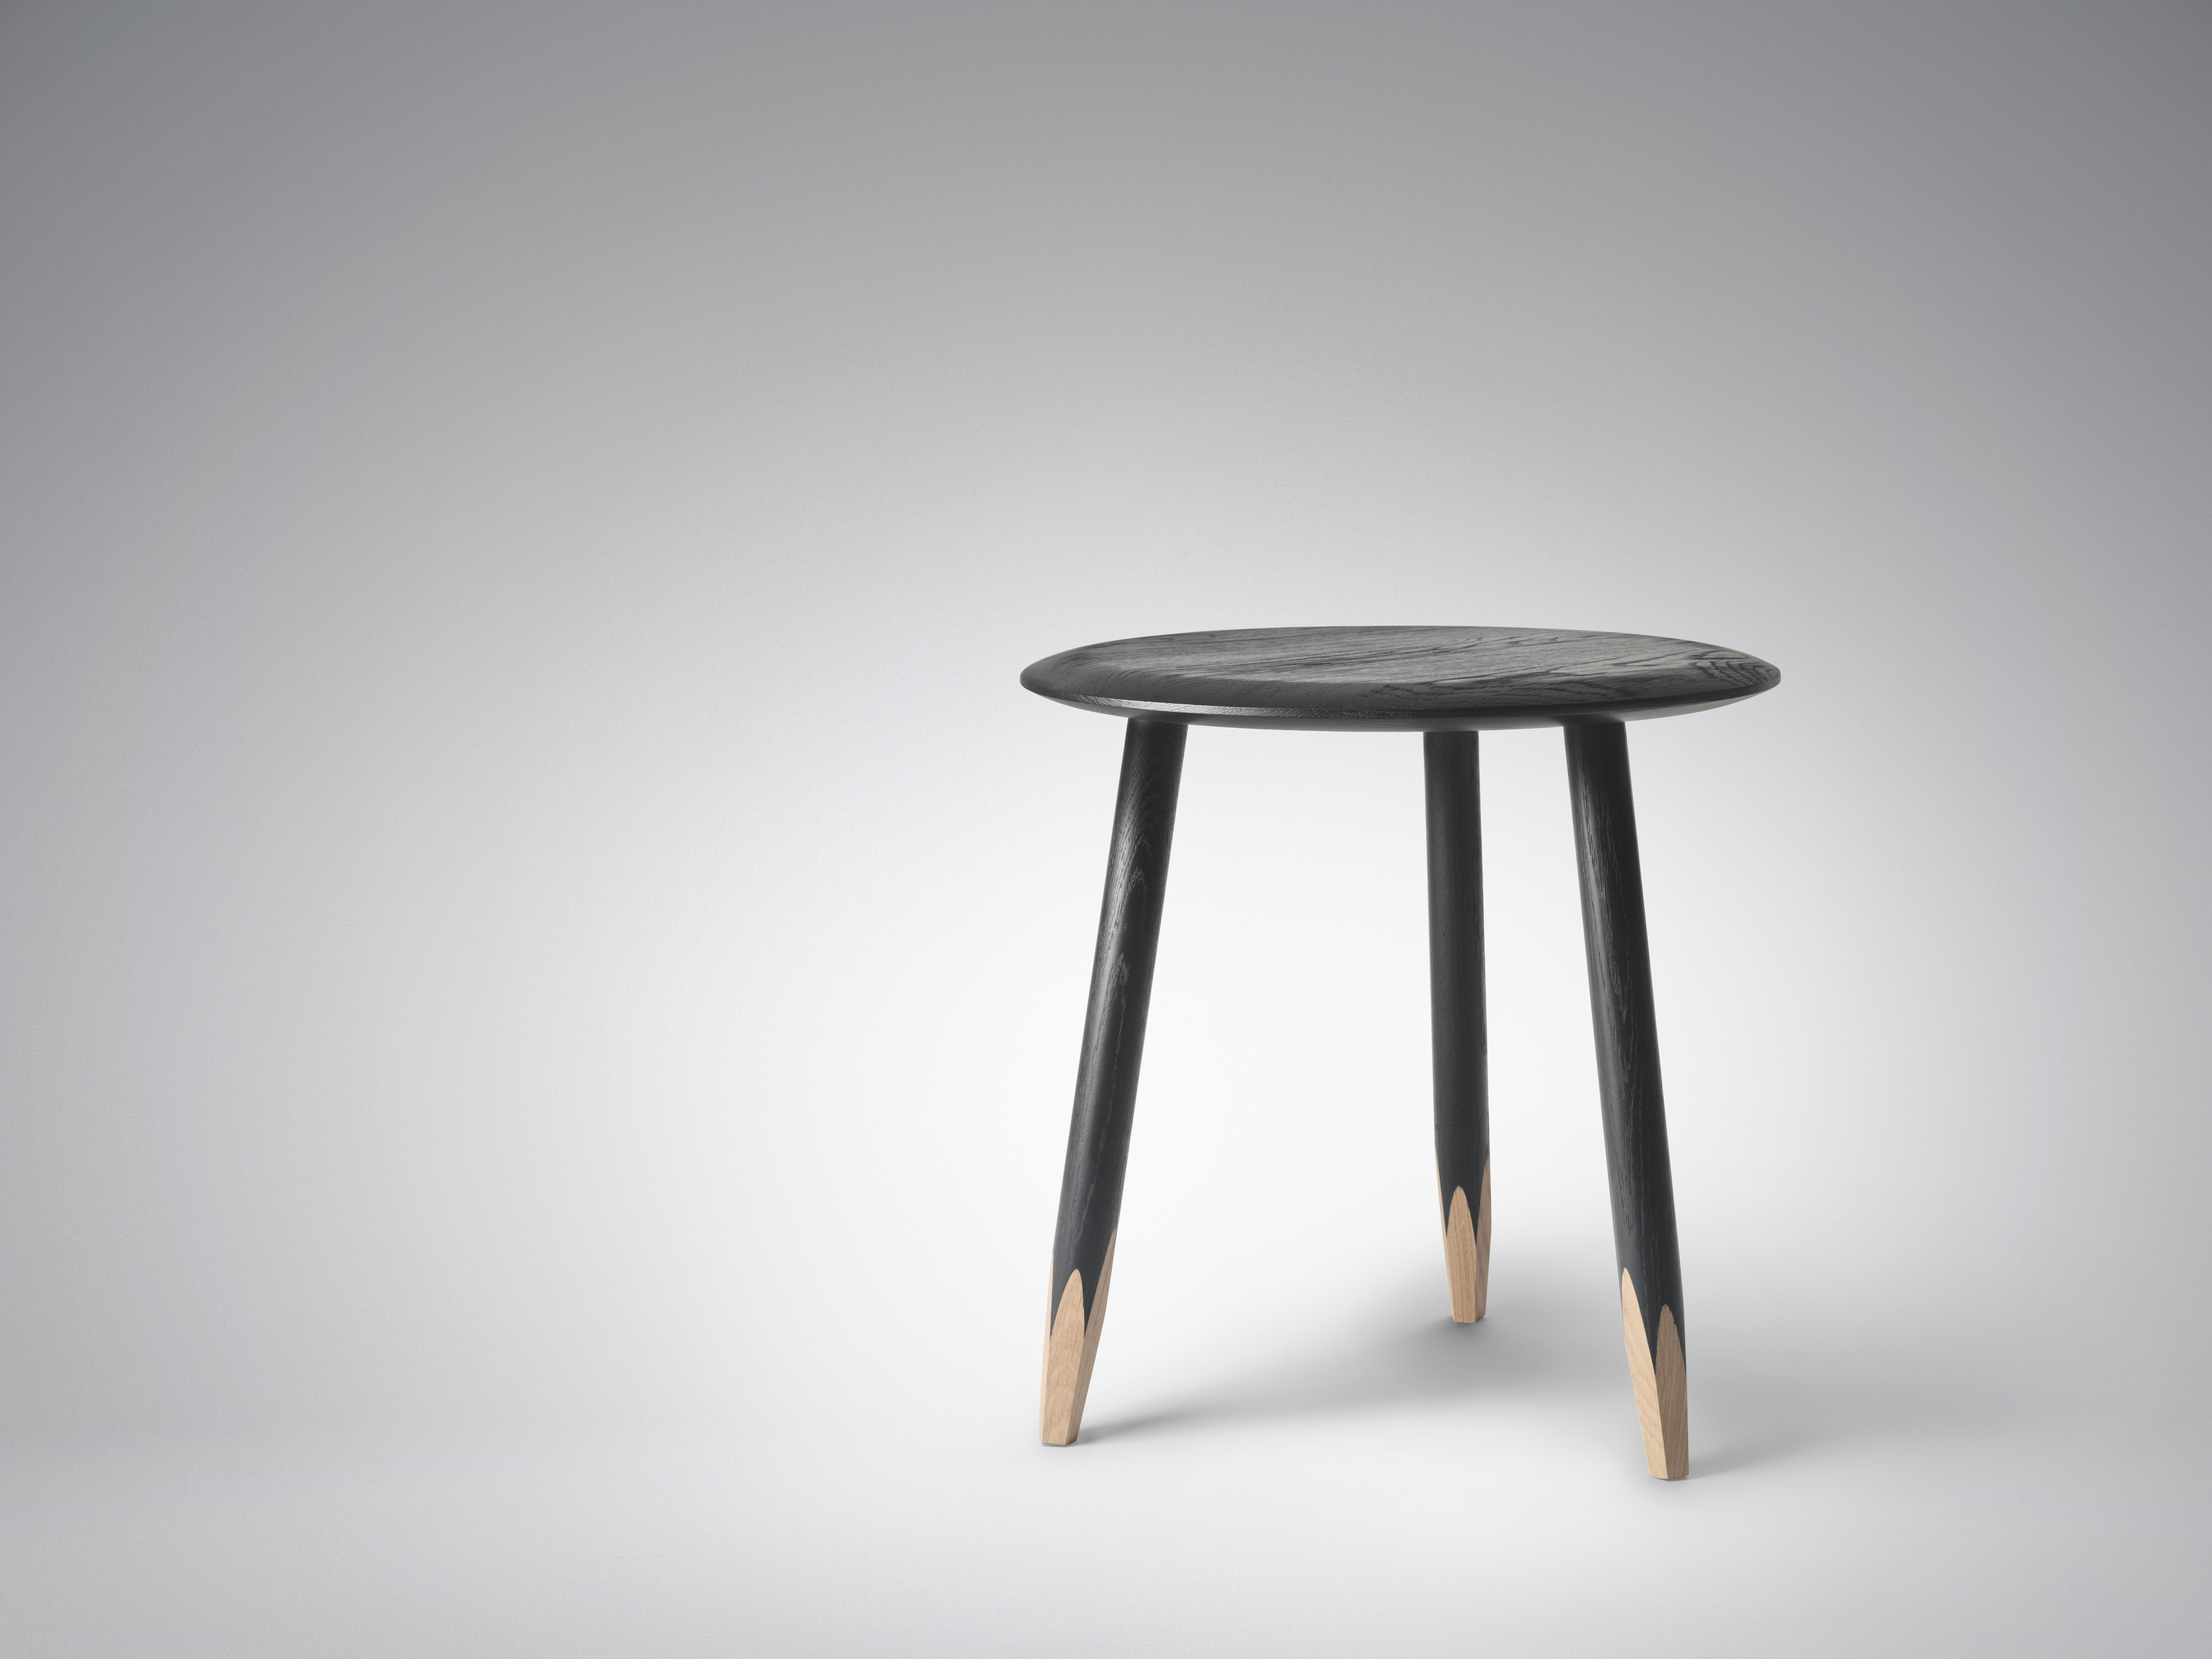 andtradition - Hoof Lounge Table by Samuel Wilkinson